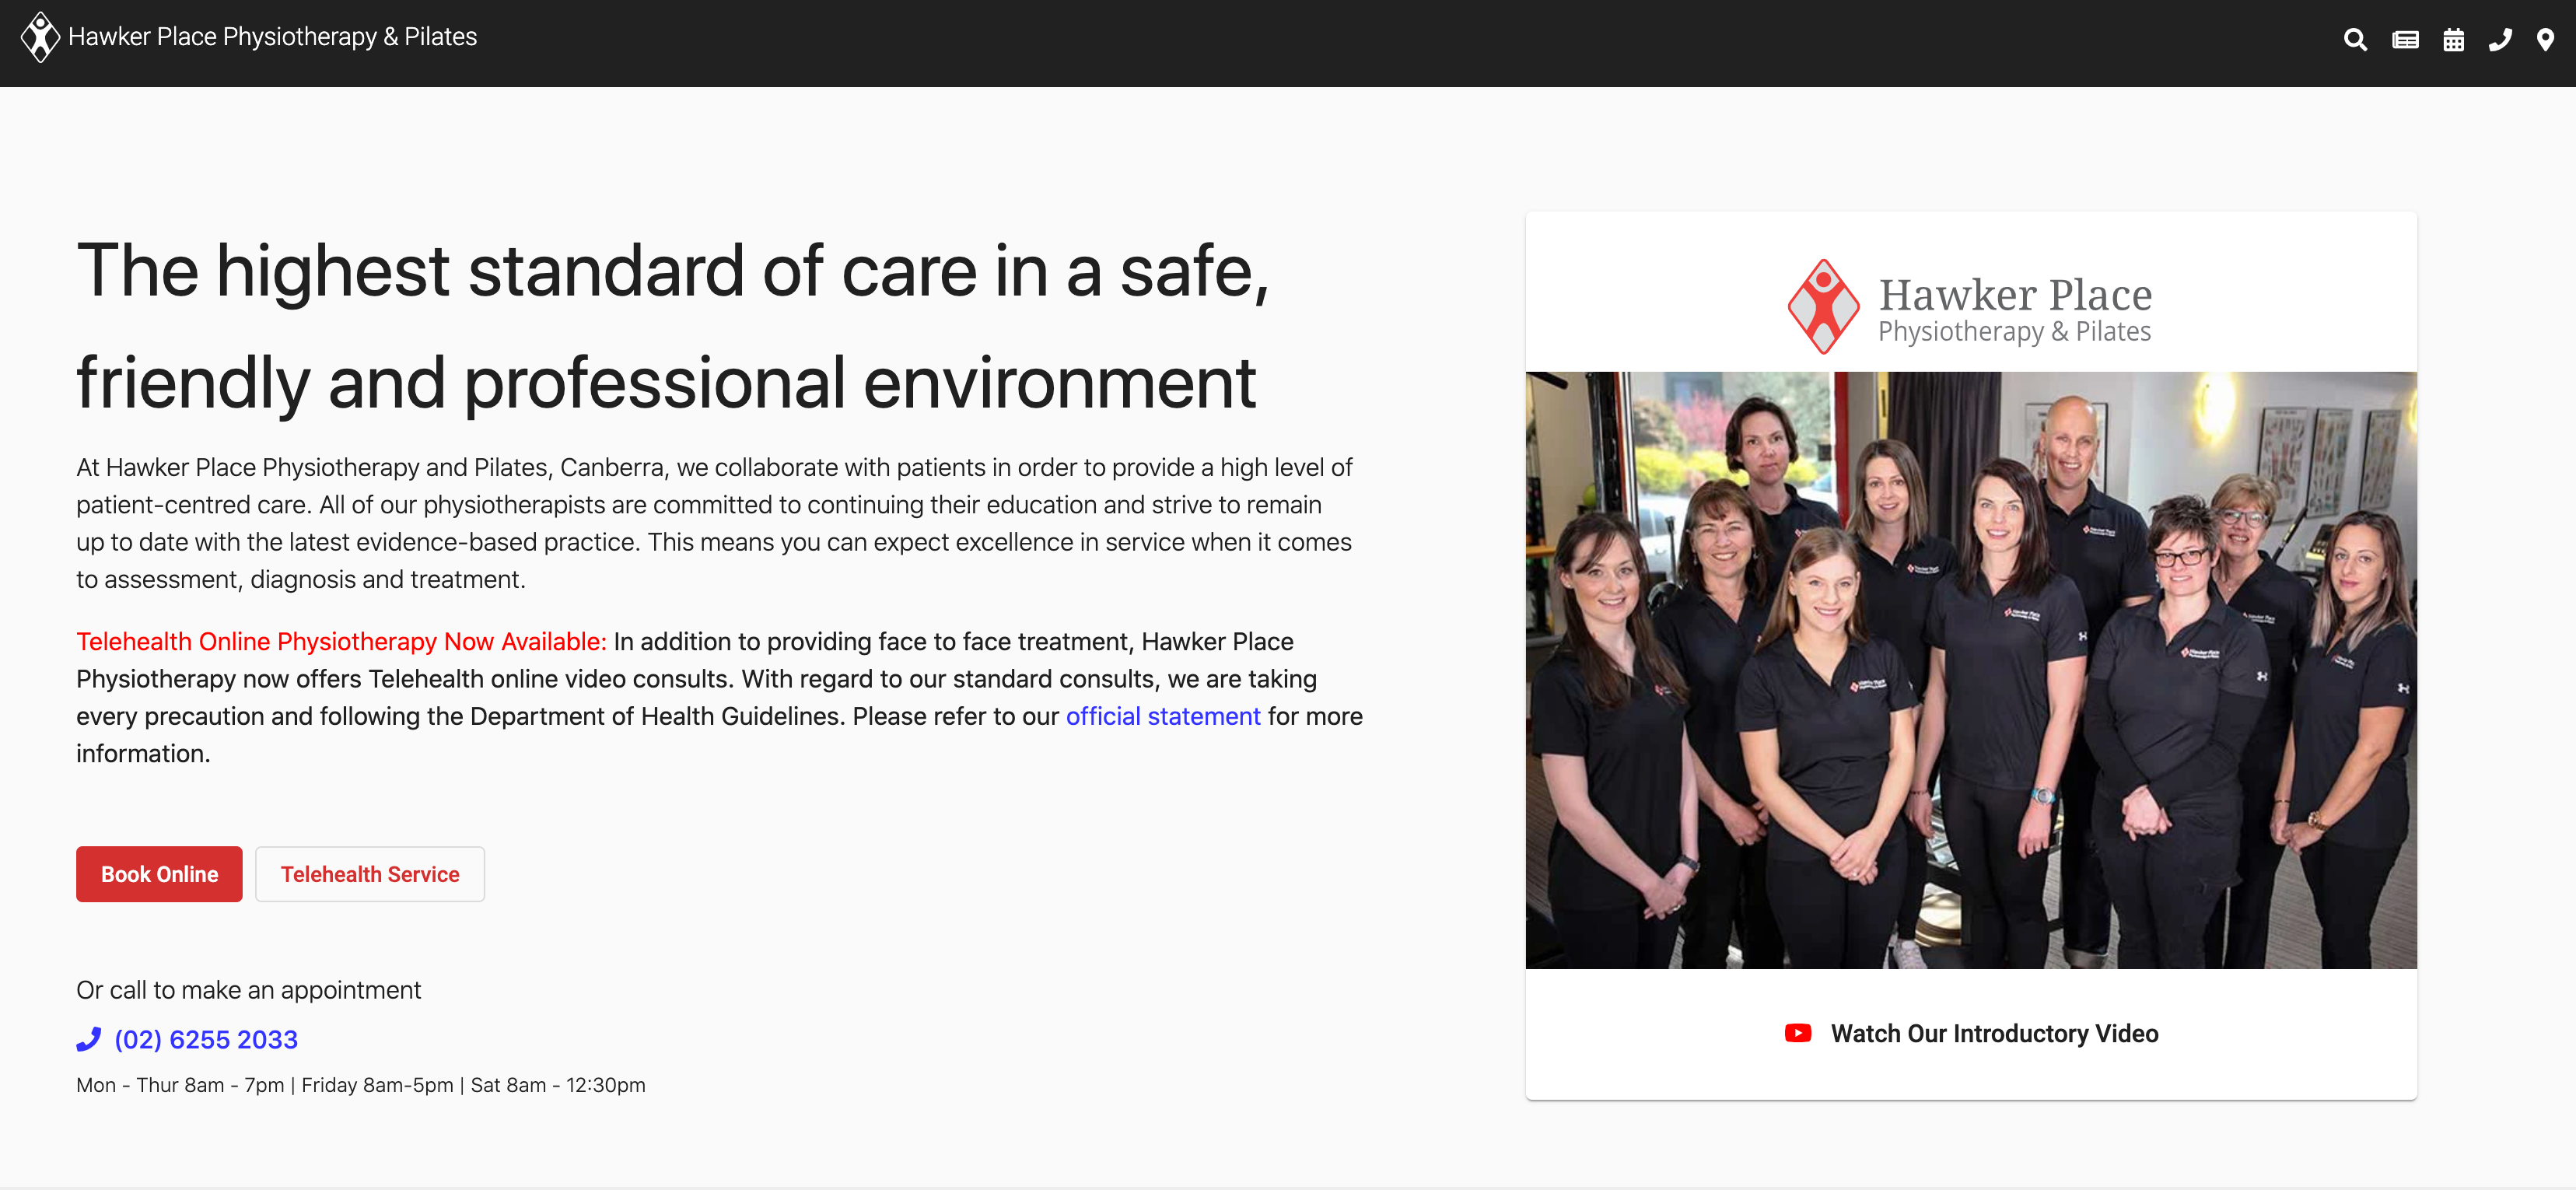 A screenshot of the Hawker Place Physiotherapy & Pilates homepage, featuring their message about COVID-19